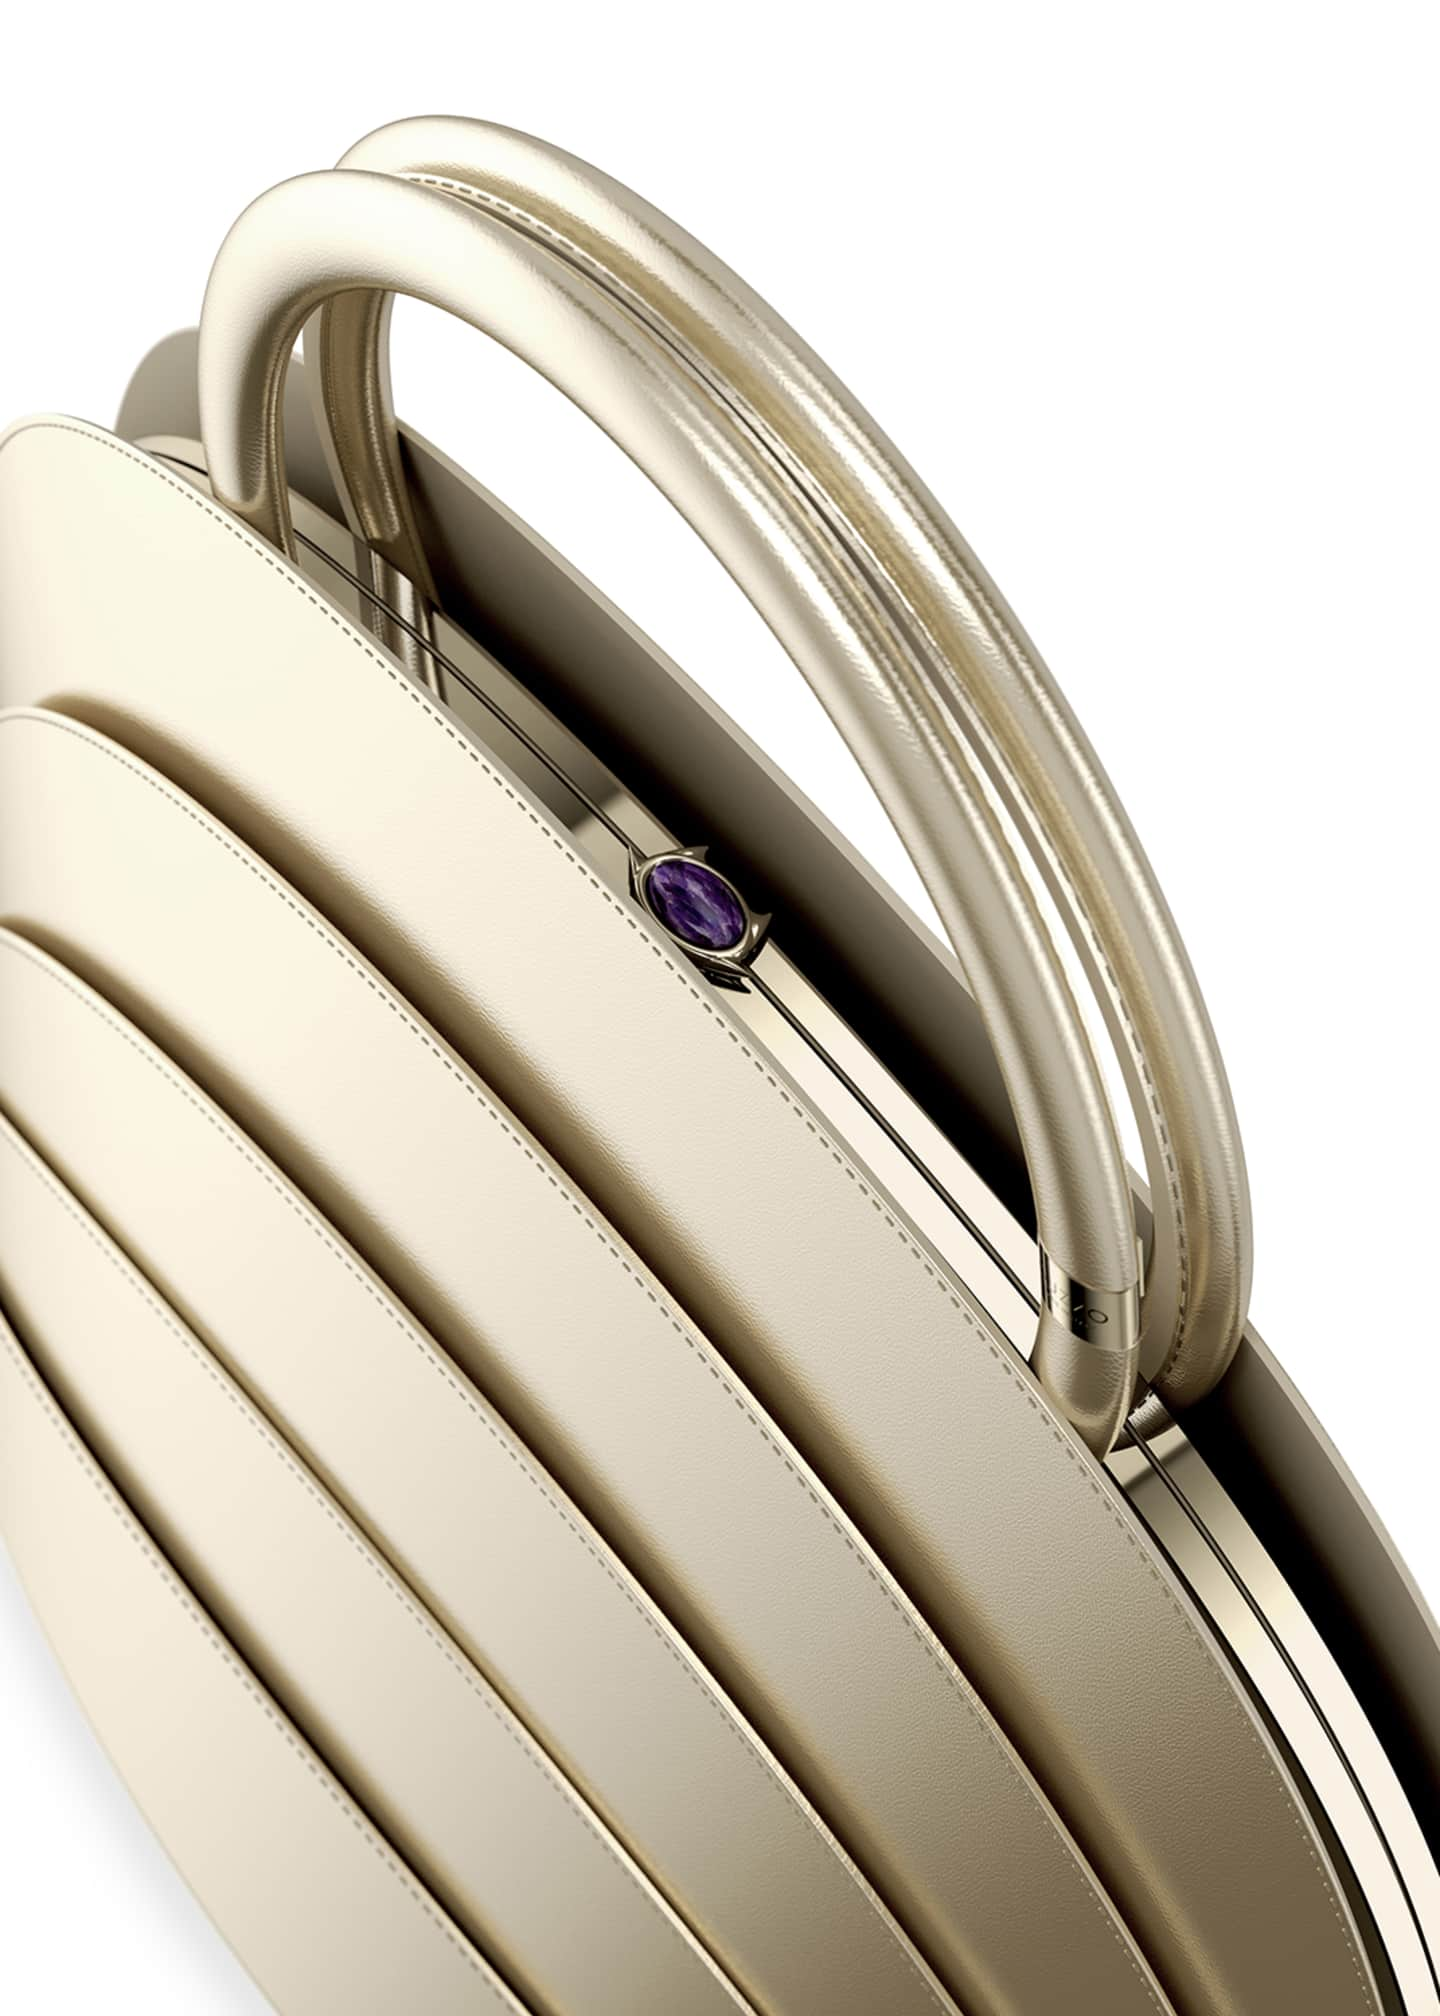 Image 3 of 3: Millefoglie J Layered Top Handle Bag, Gold